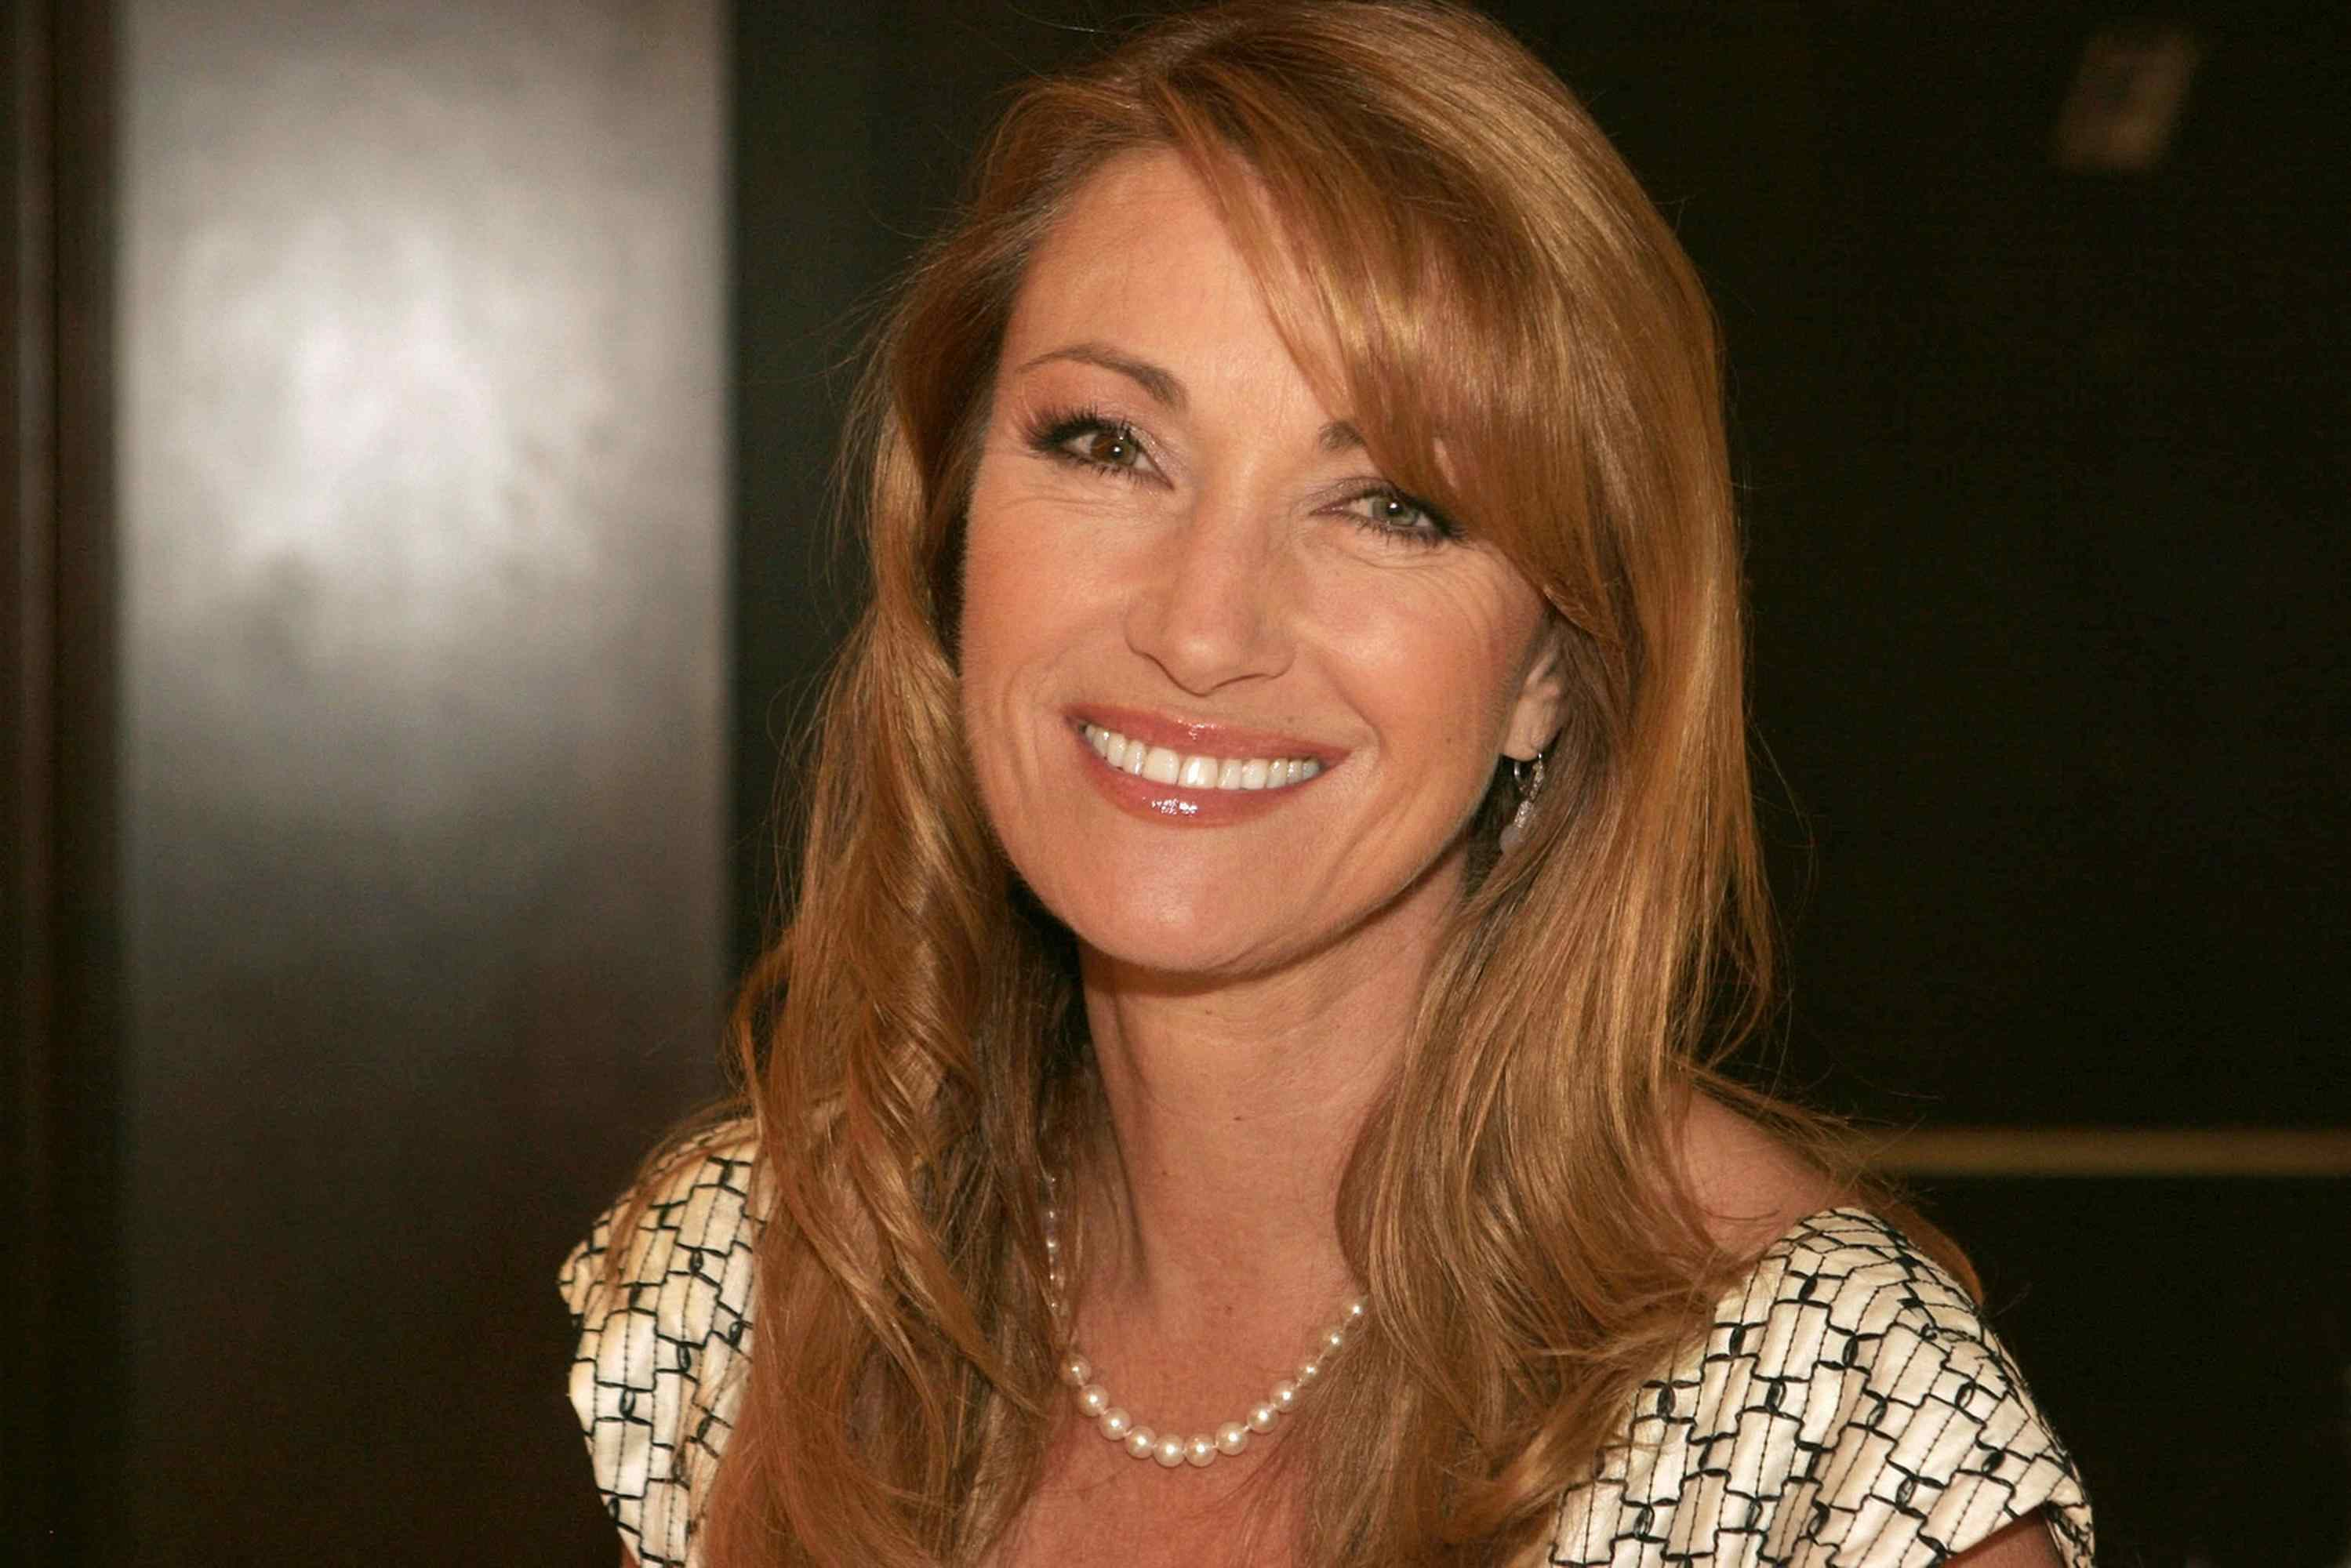 Jane Seymour the actress who has had a near death experience.